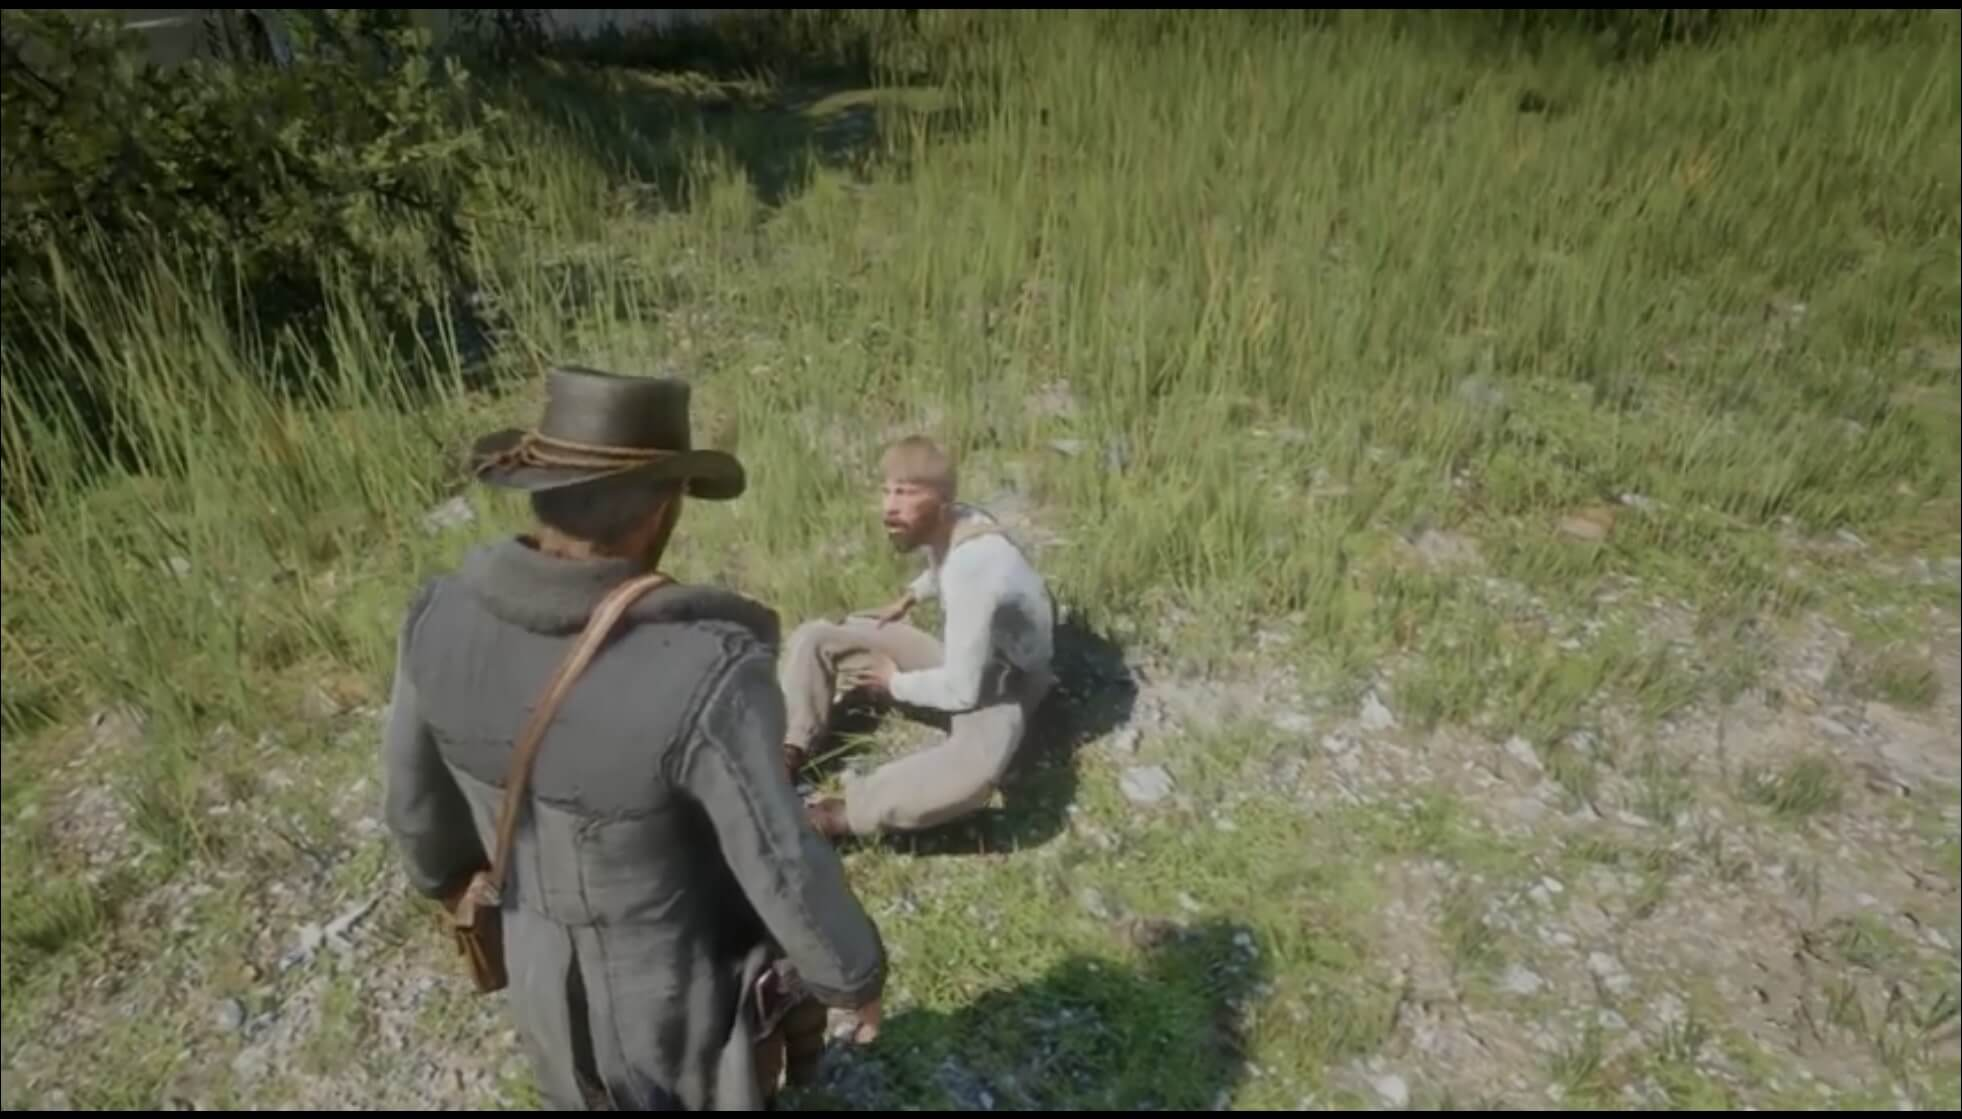 Red Dead Redemption 2 tips -Getting a free gun from a guy